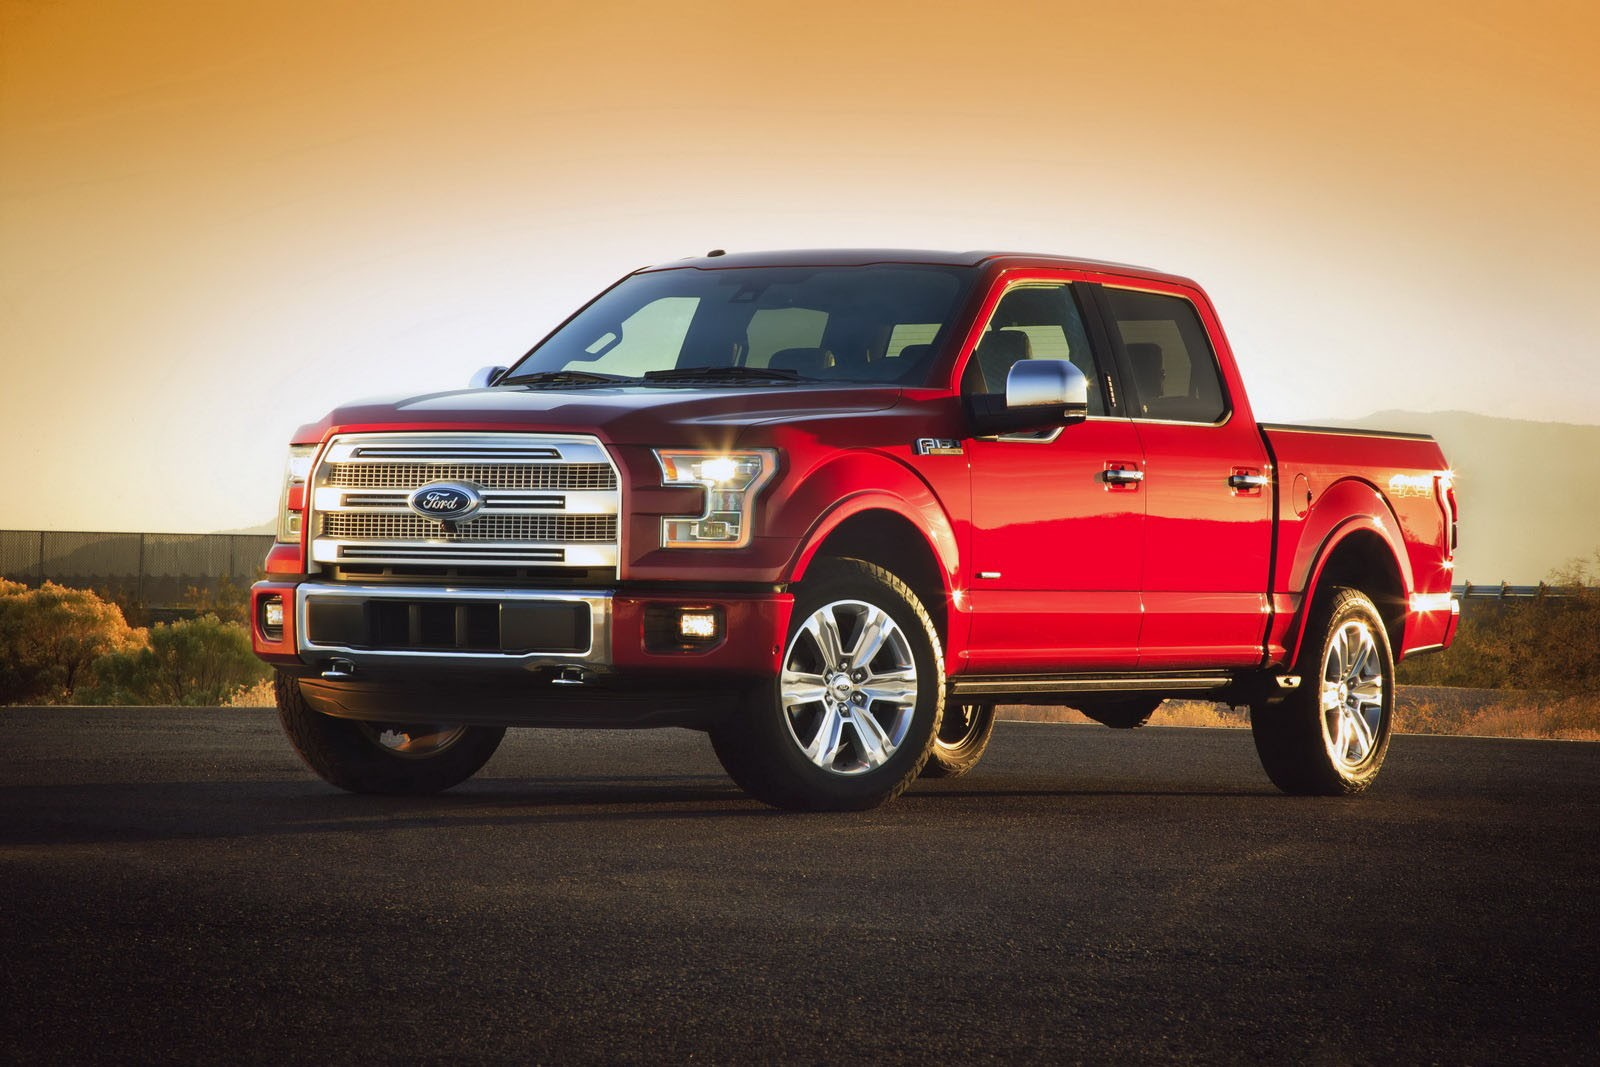 New Engine Could Help Ford F-150 Hit 30